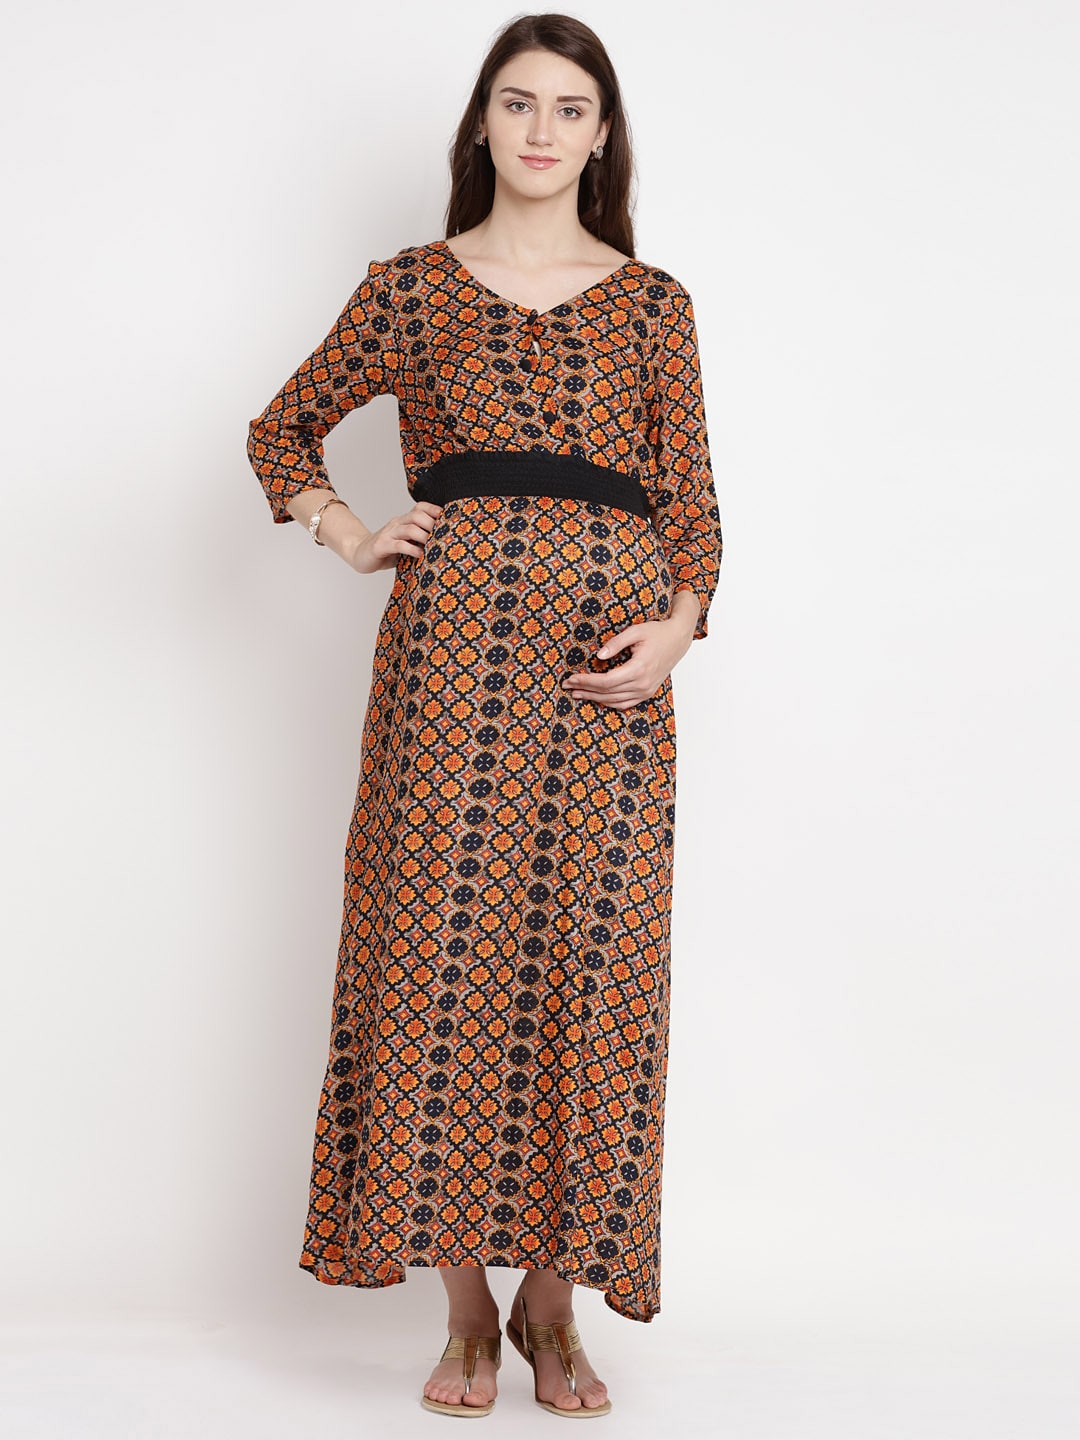 09696f8f46 Maternity Dresses - Buy Pregnancy Dress Online in India